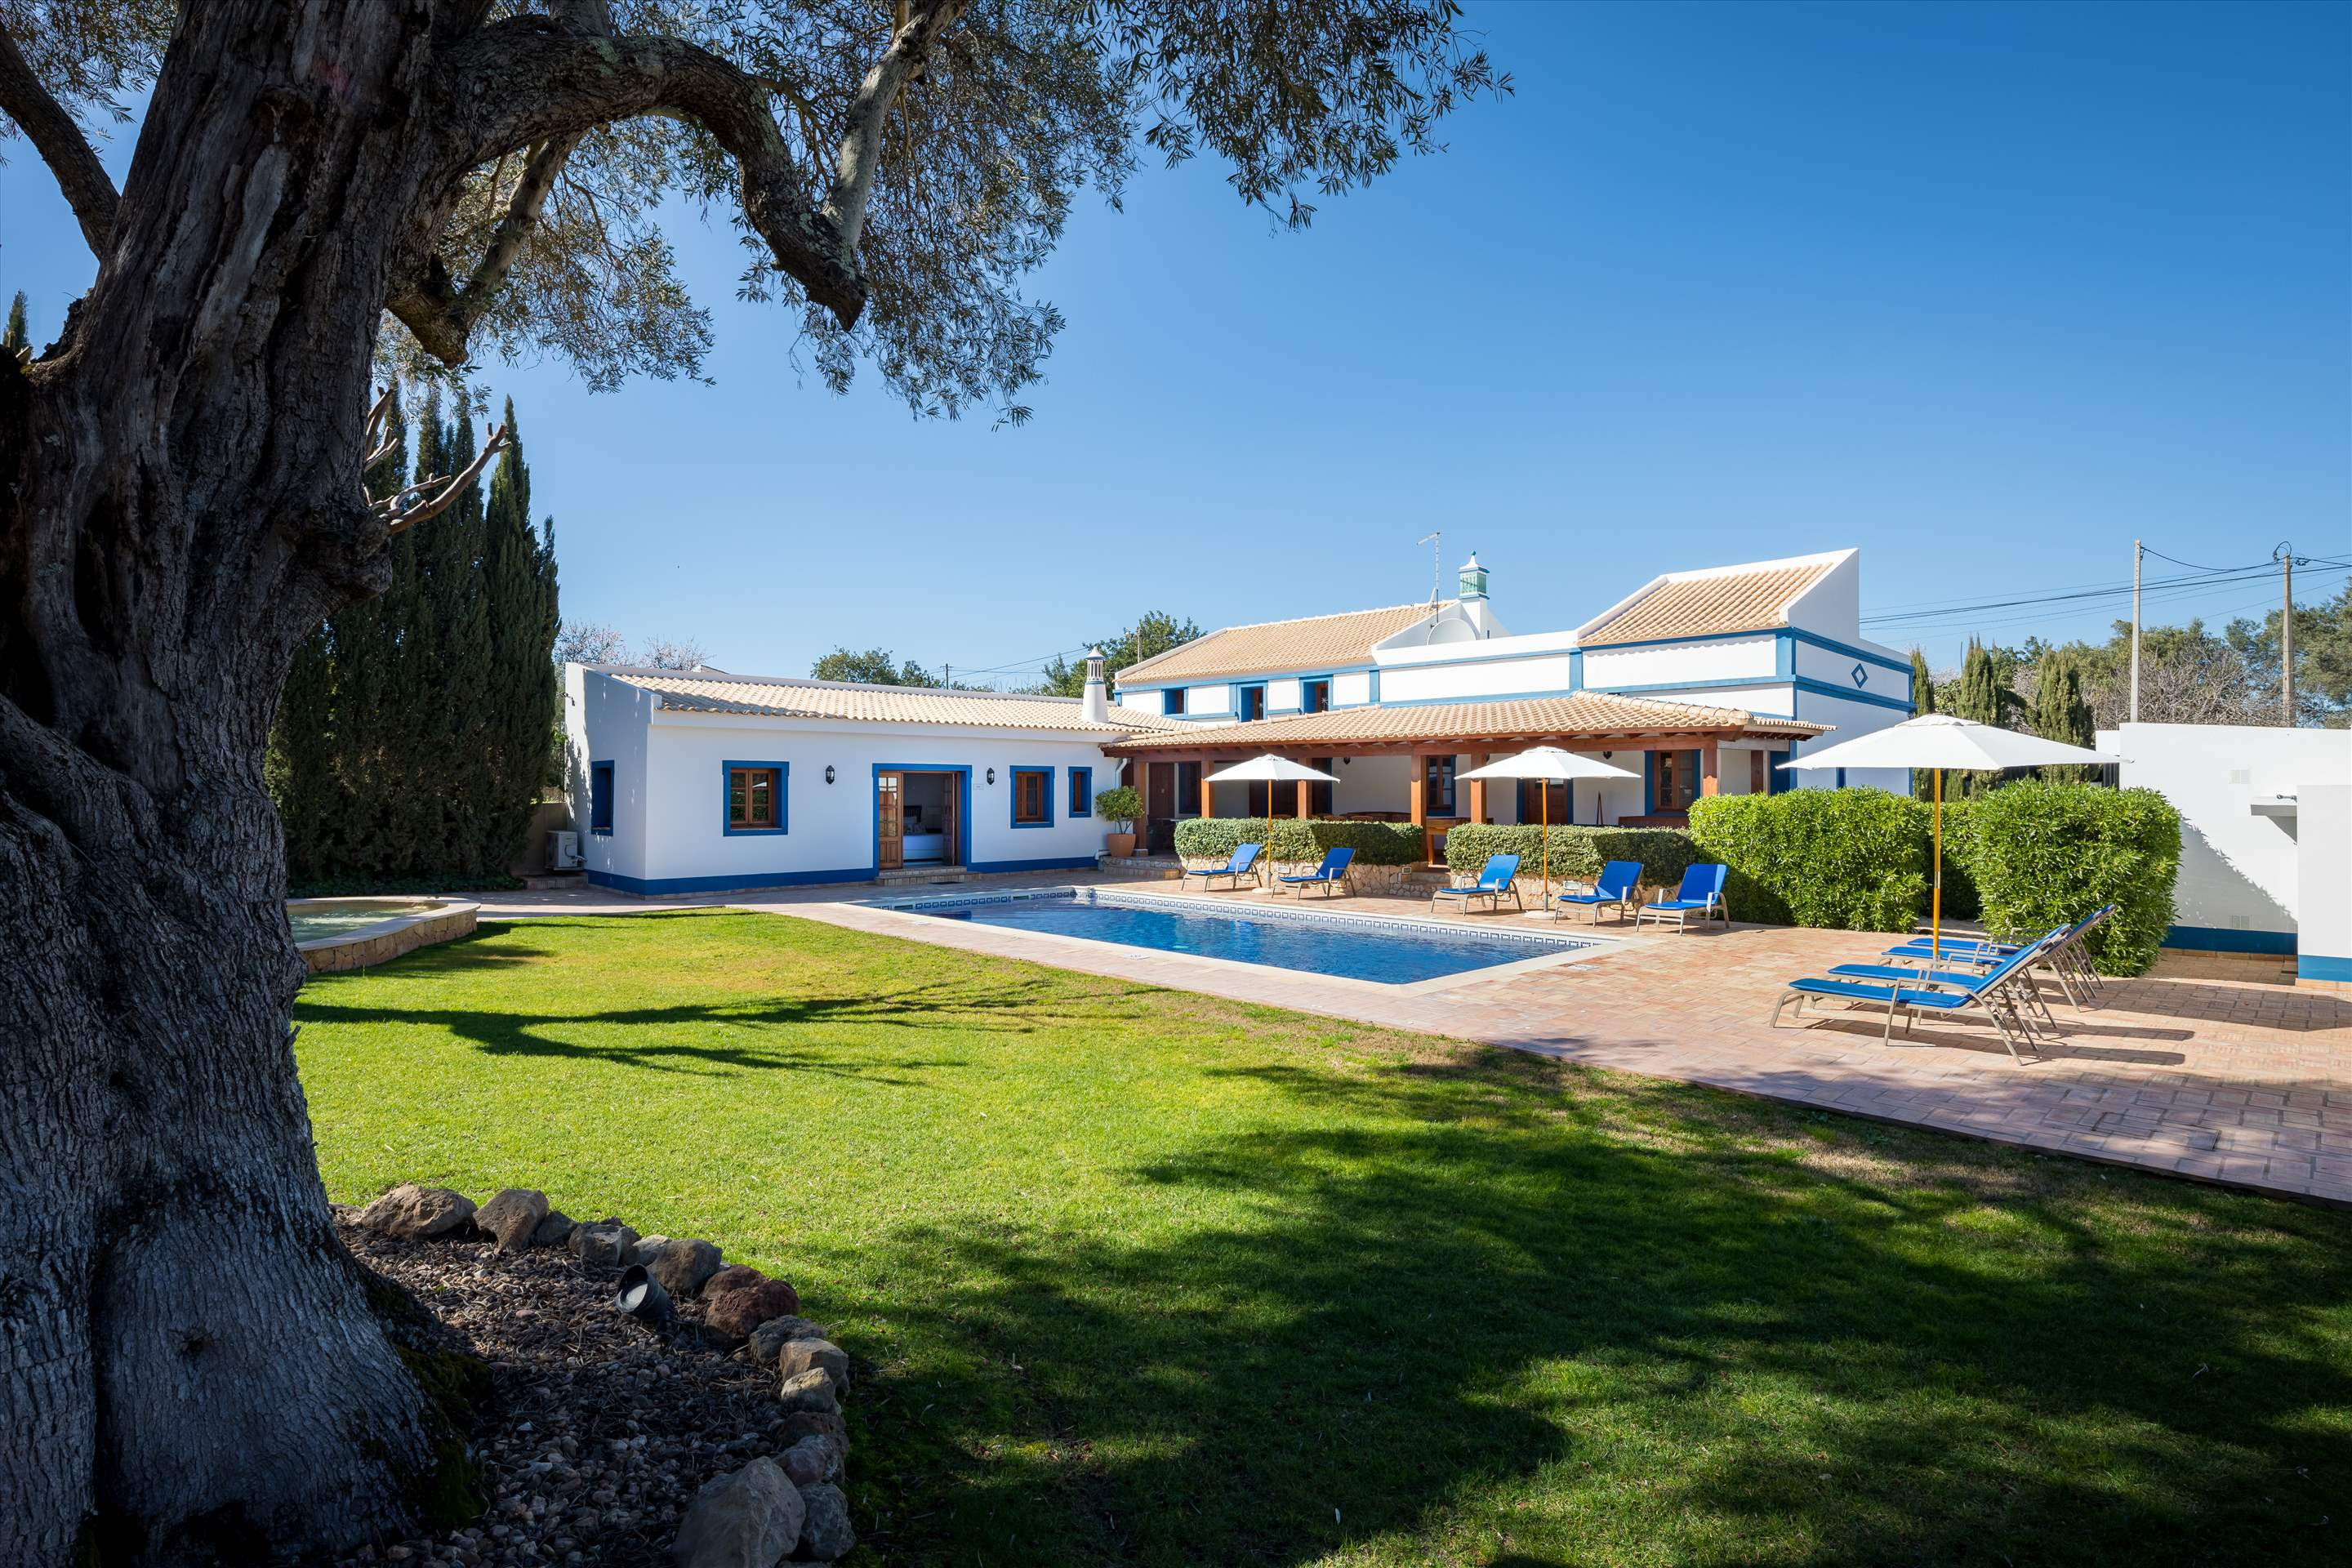 Casa do Ingles, 7-10 persons, 4 bedroom villa in Vilamoura Area, Algarve